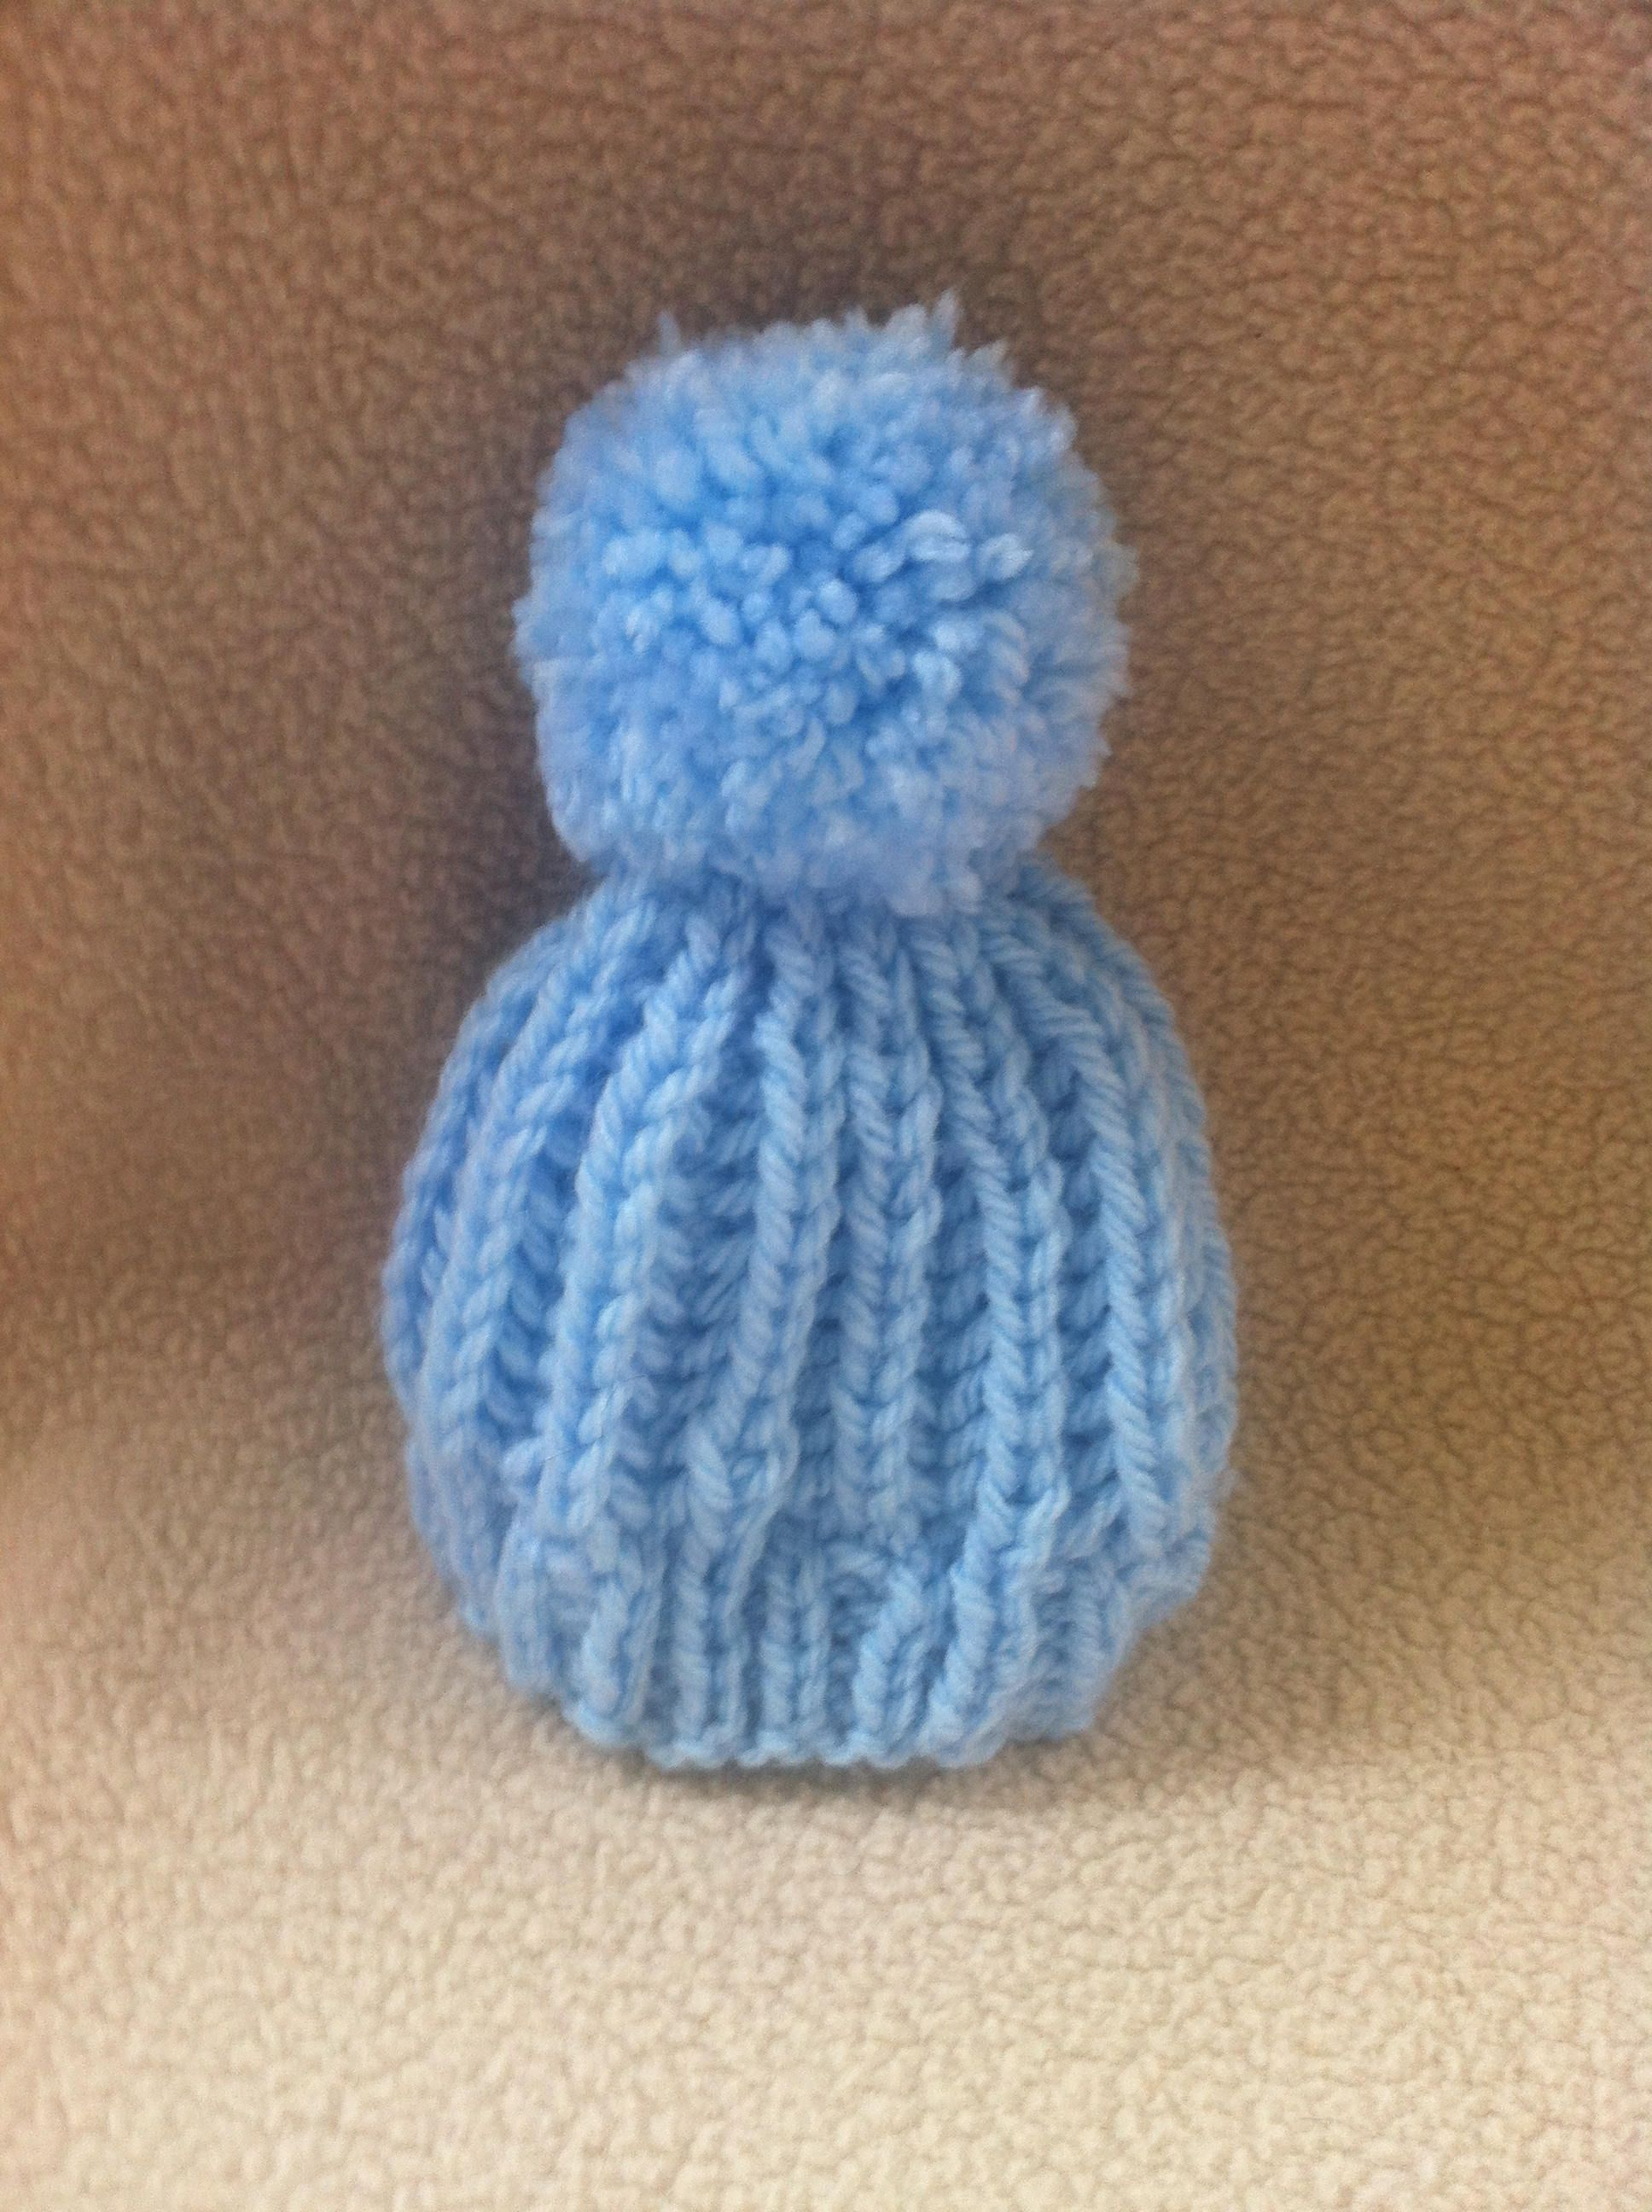 c425709d021 ... czech newborn baby boy hand knitted hat. this hat is so cute fisherman  stitch makes